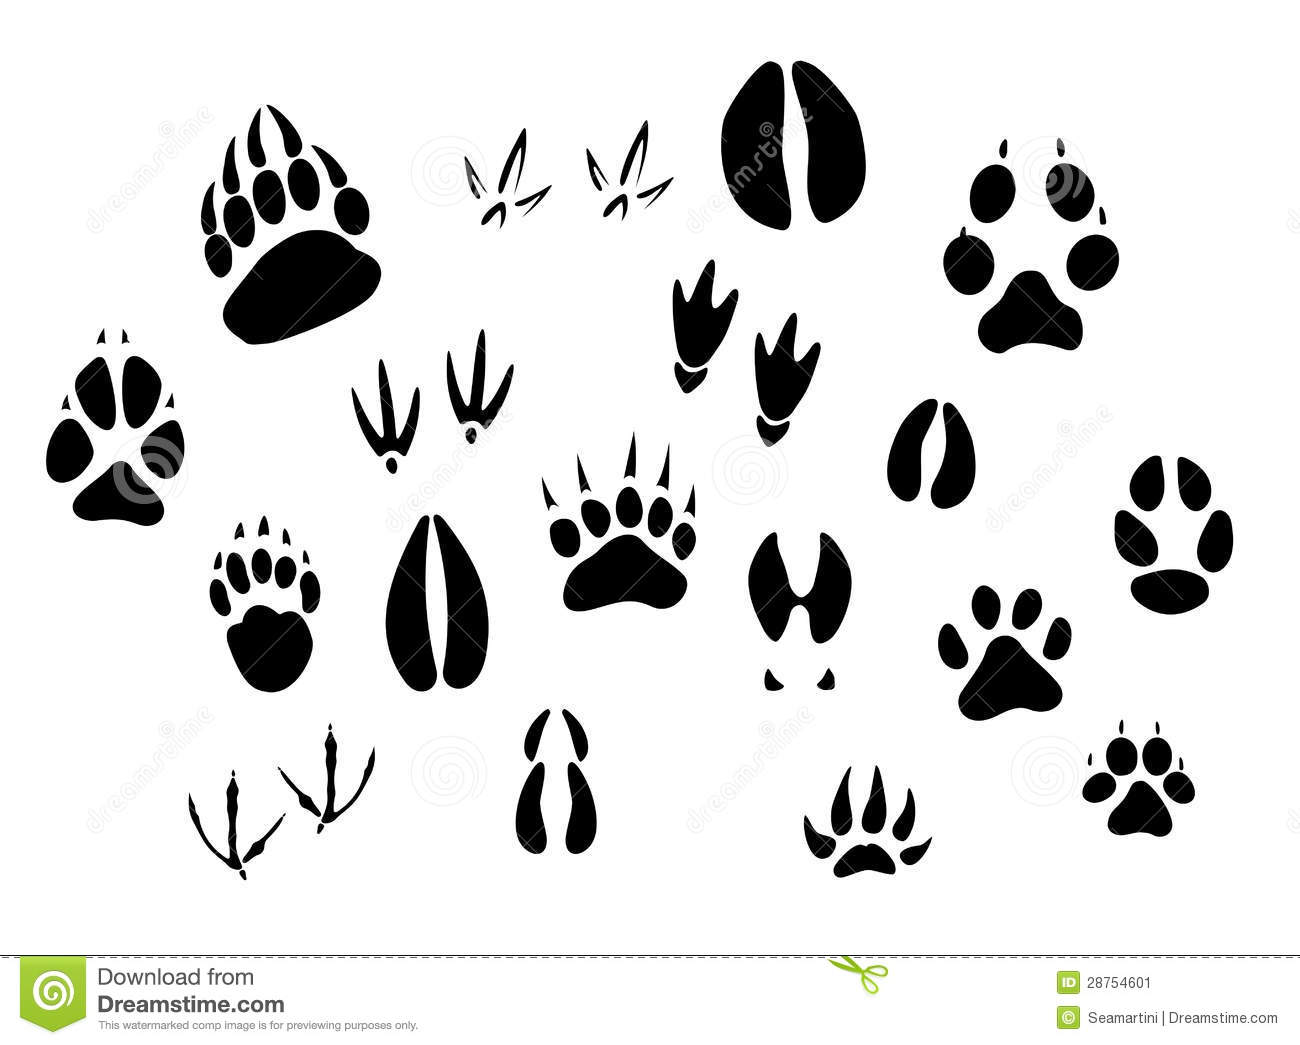 photograph relating to Free Printable Animal Tracks identify Animal Footprints Silhouettes Inventory Vector - Instance of